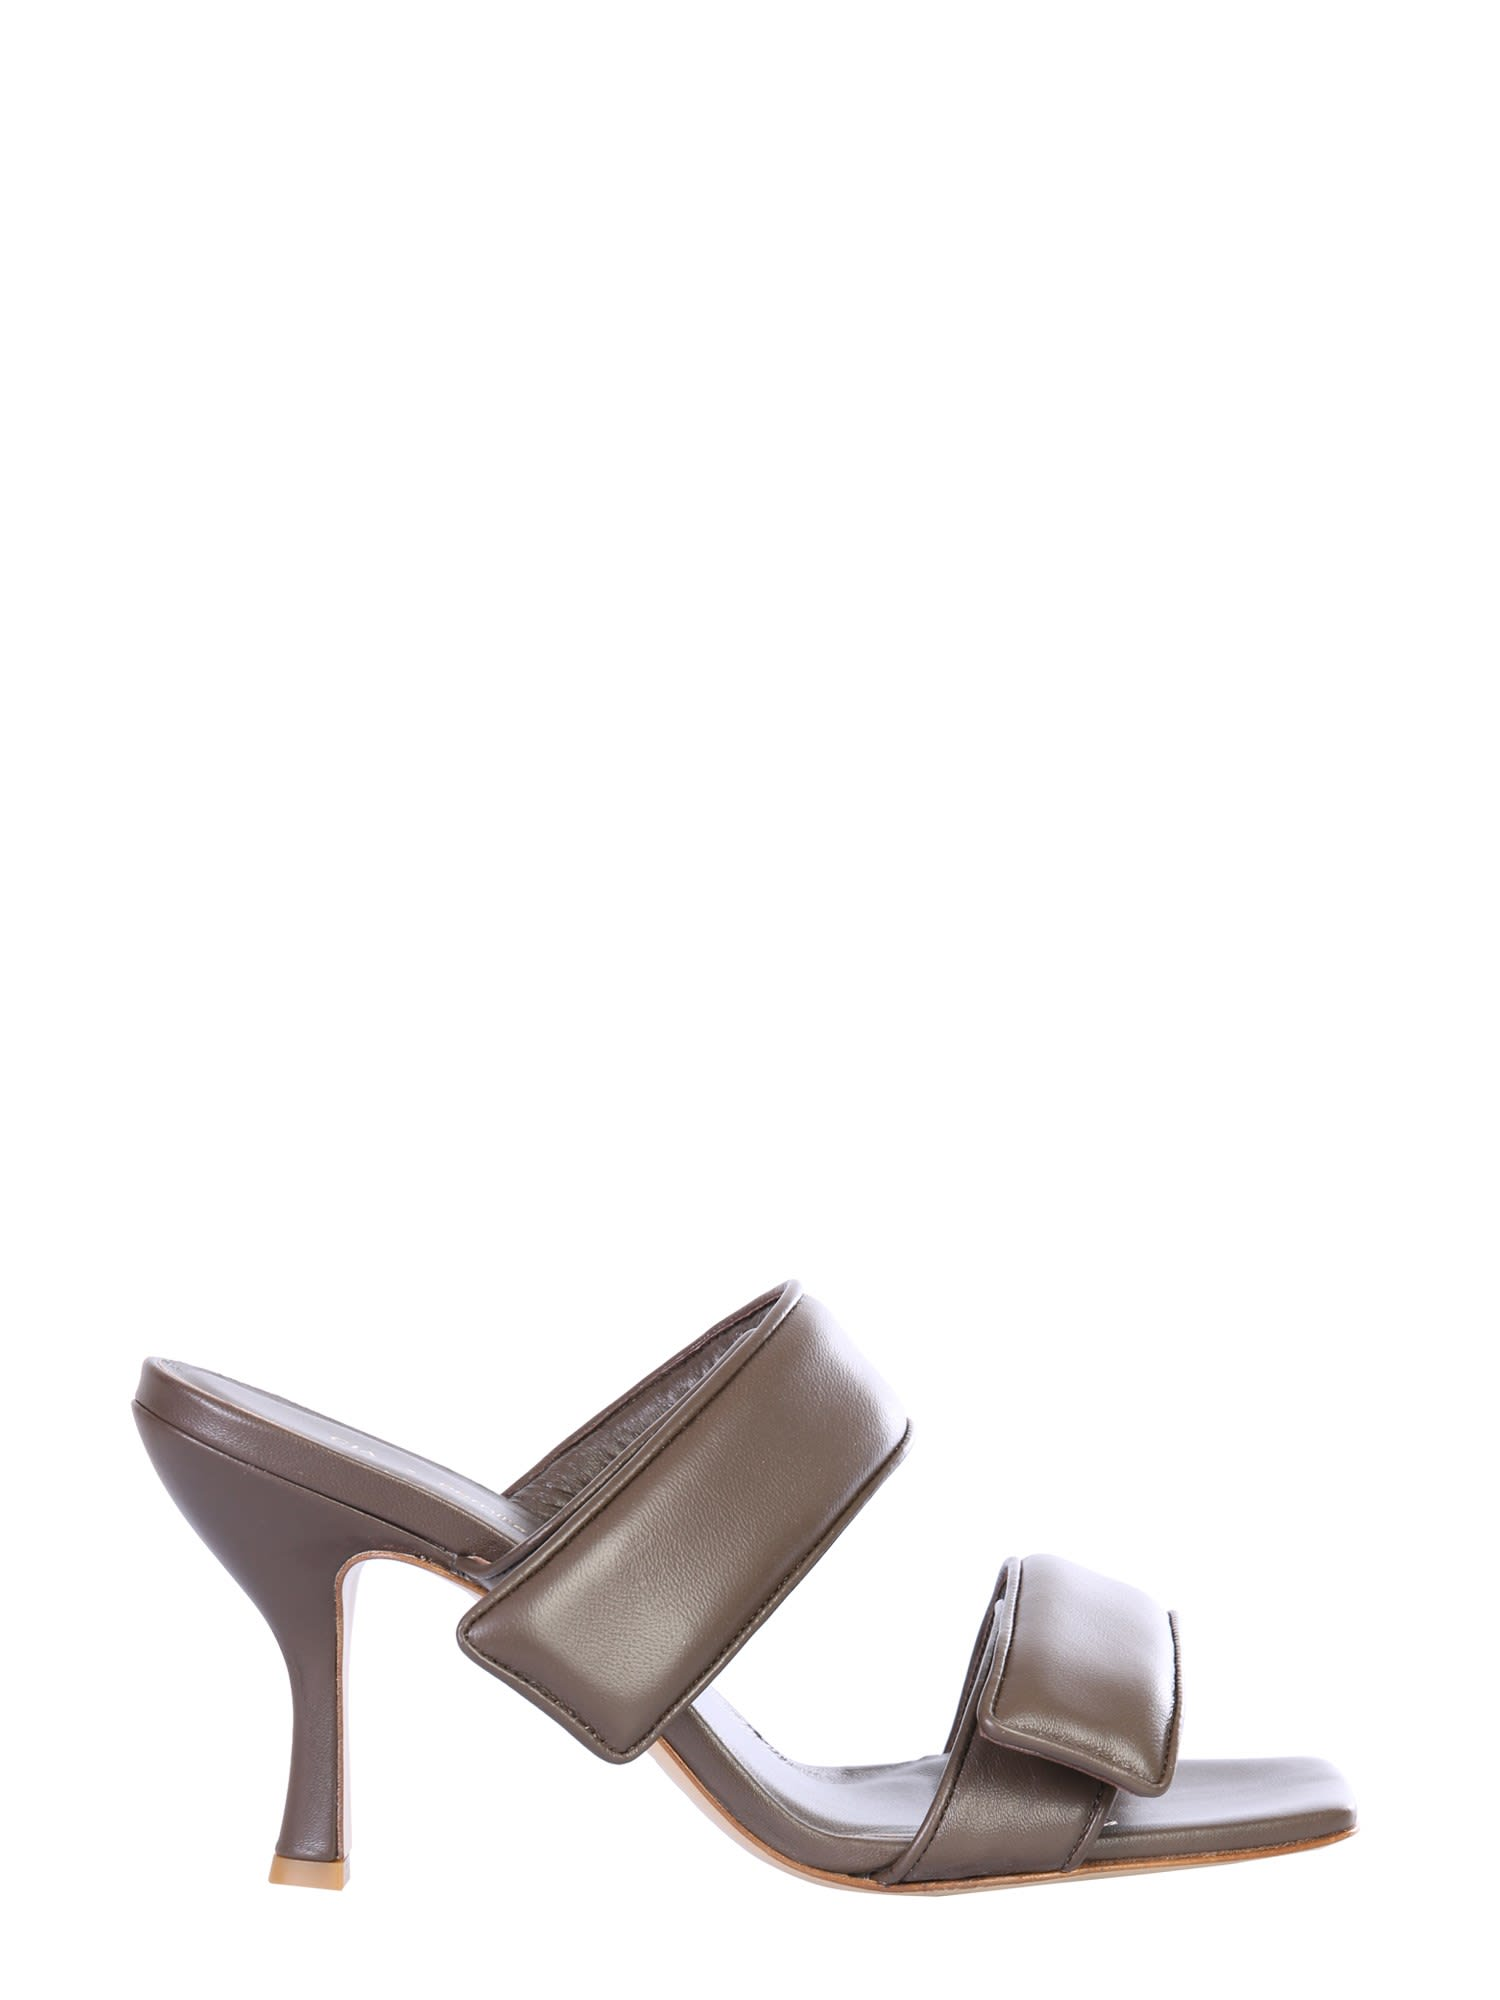 Gia Couture PADDED LEATHER SANDALS